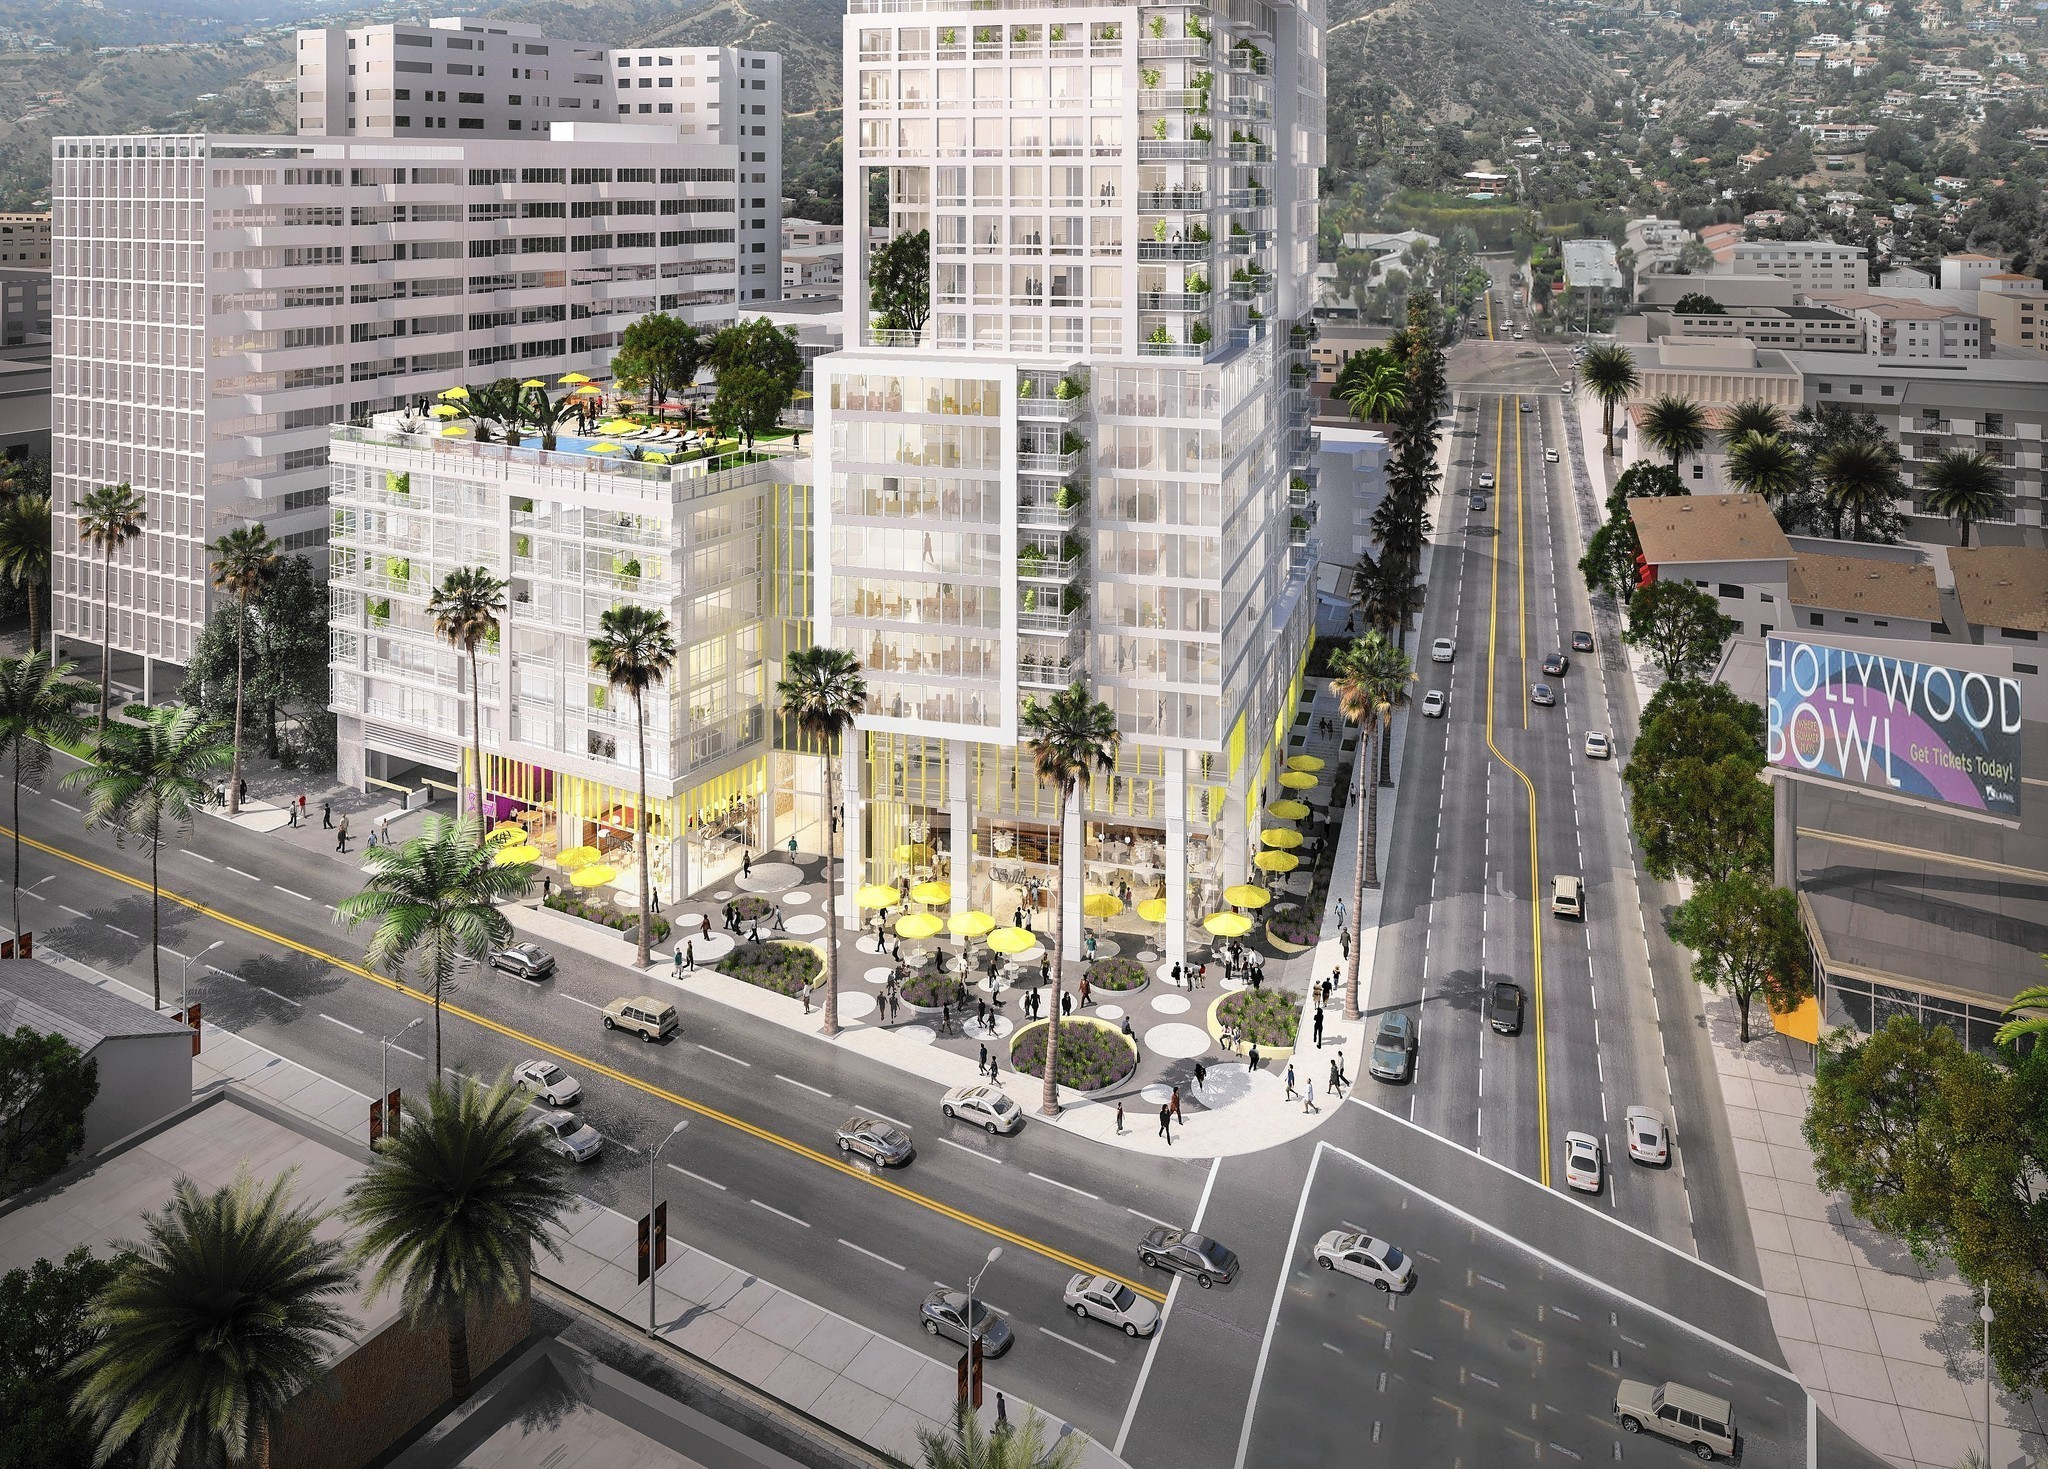 Battle over Hollywood church could plicate a high rise